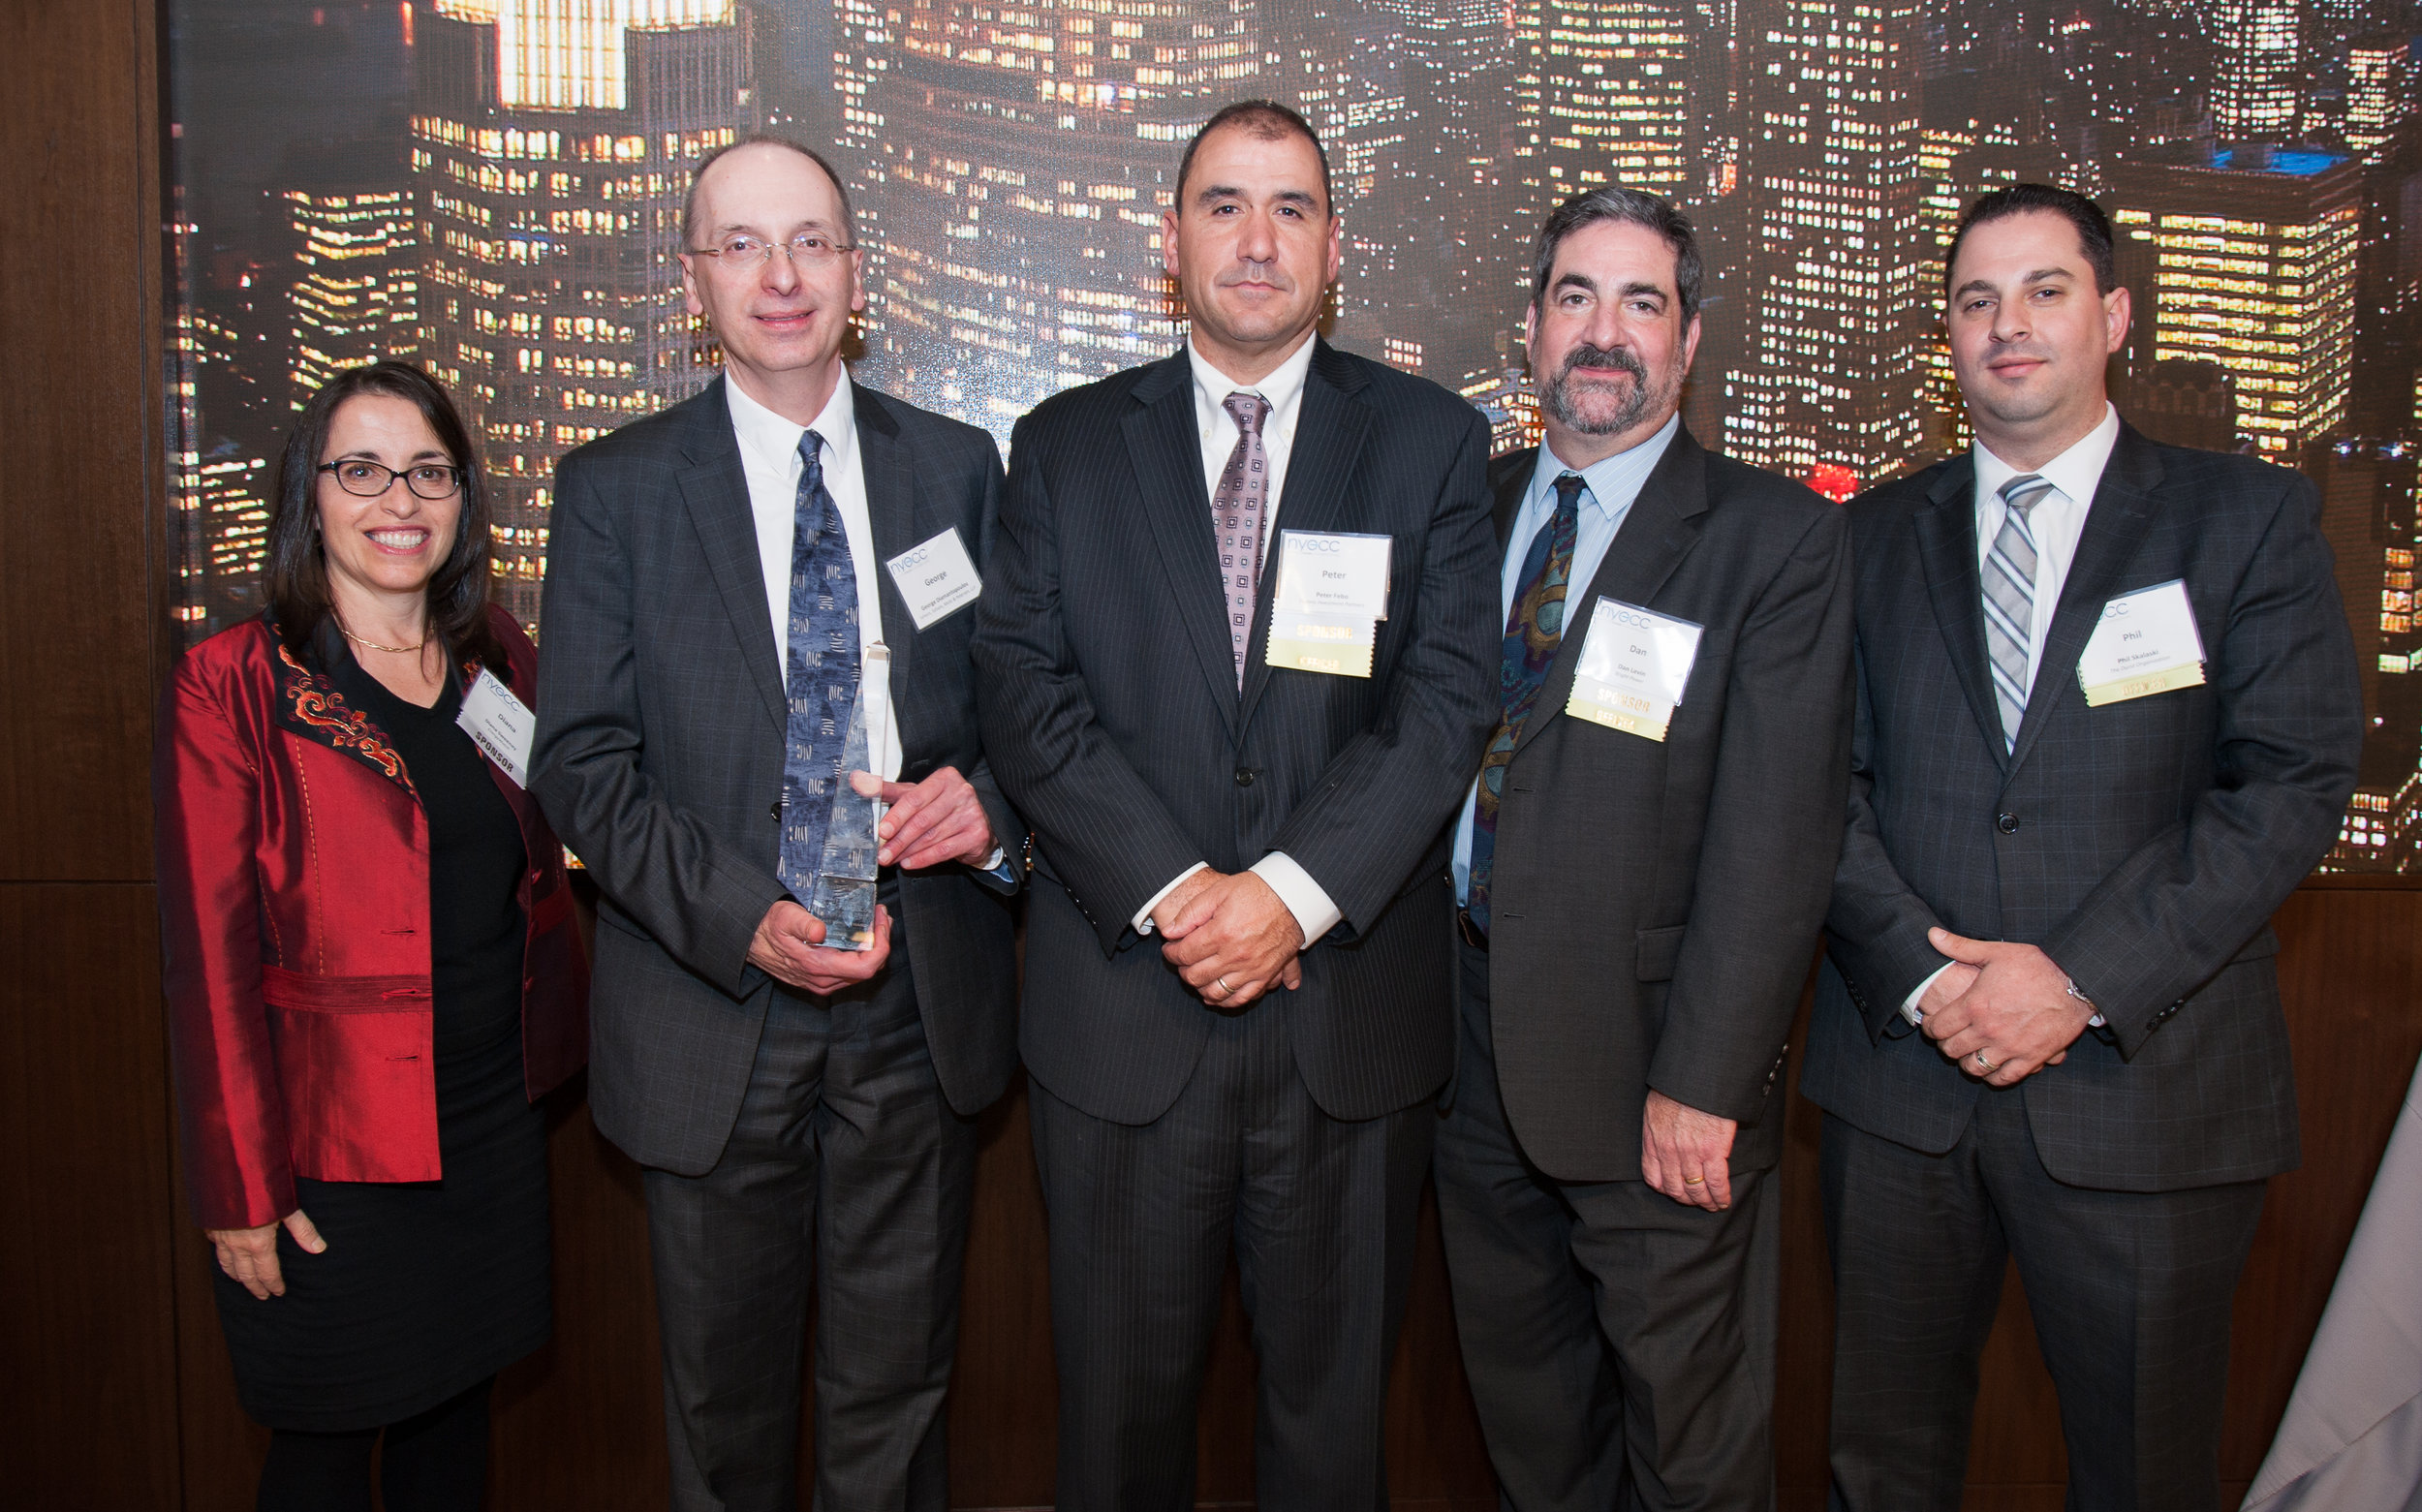 NYECC Executive Director Diana Sweeney, Legal Counsel George Diamantopoulos, Co-President Peter Febo, Executive Vice President Dan Levin, and Co-President Phil Skalaski at the 2016 Energy New York Awards (ENYA) Celebration.